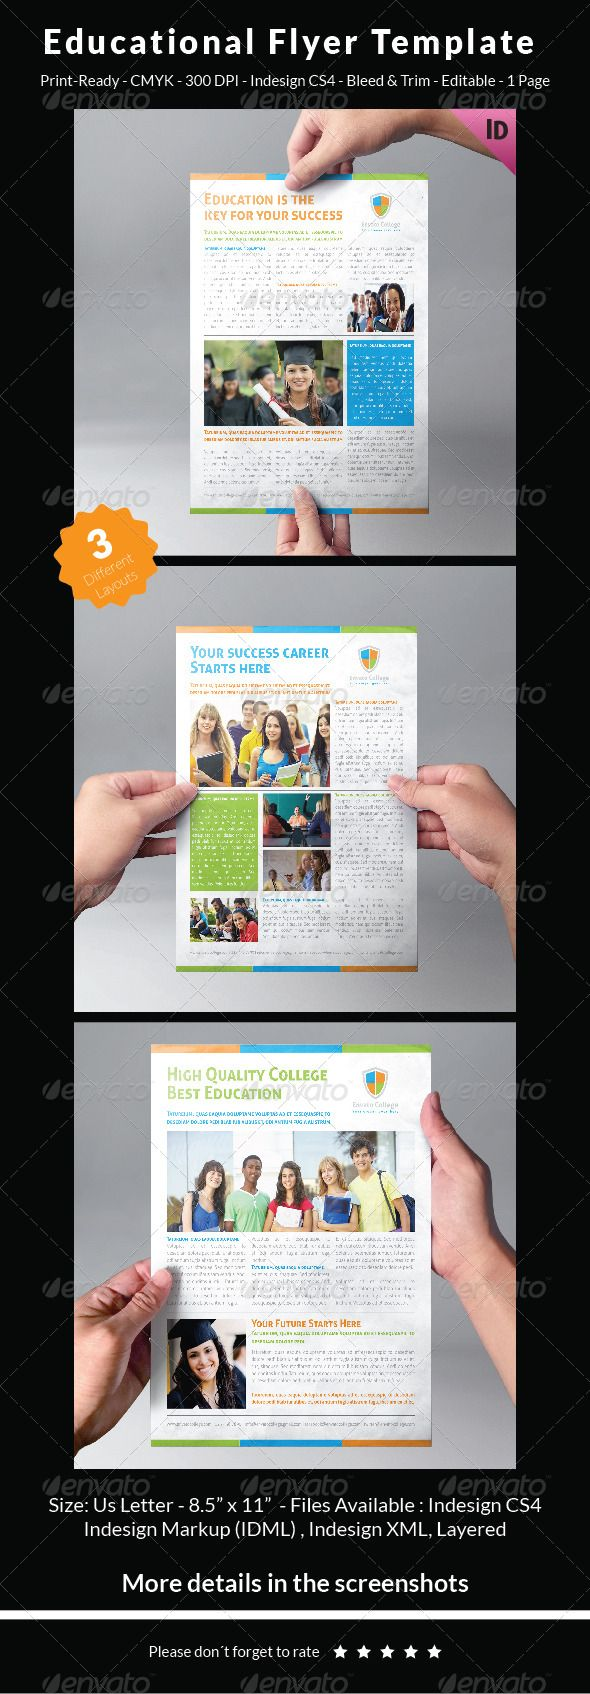 Educational Flyer Template | Flyer template, Template and Font logo